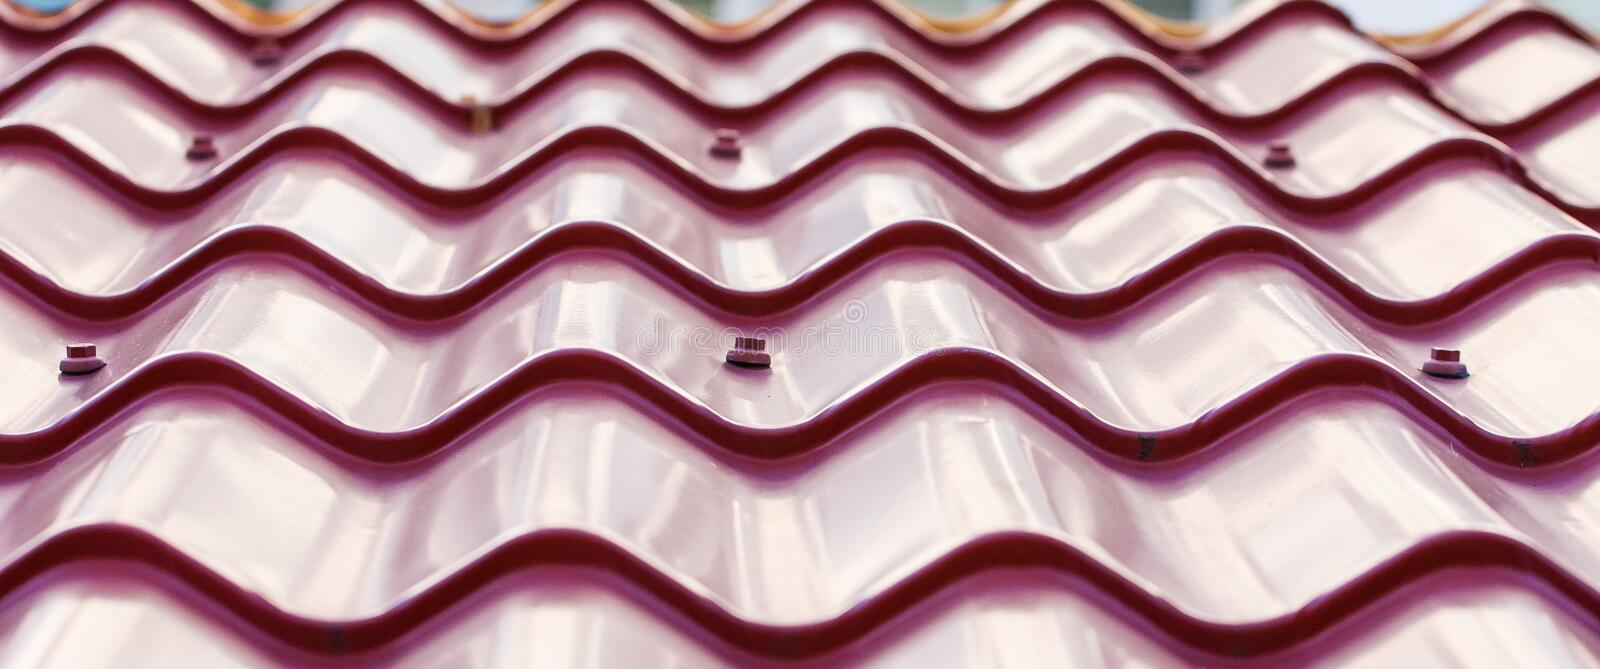 Purple Metal Tile Roof stock photo